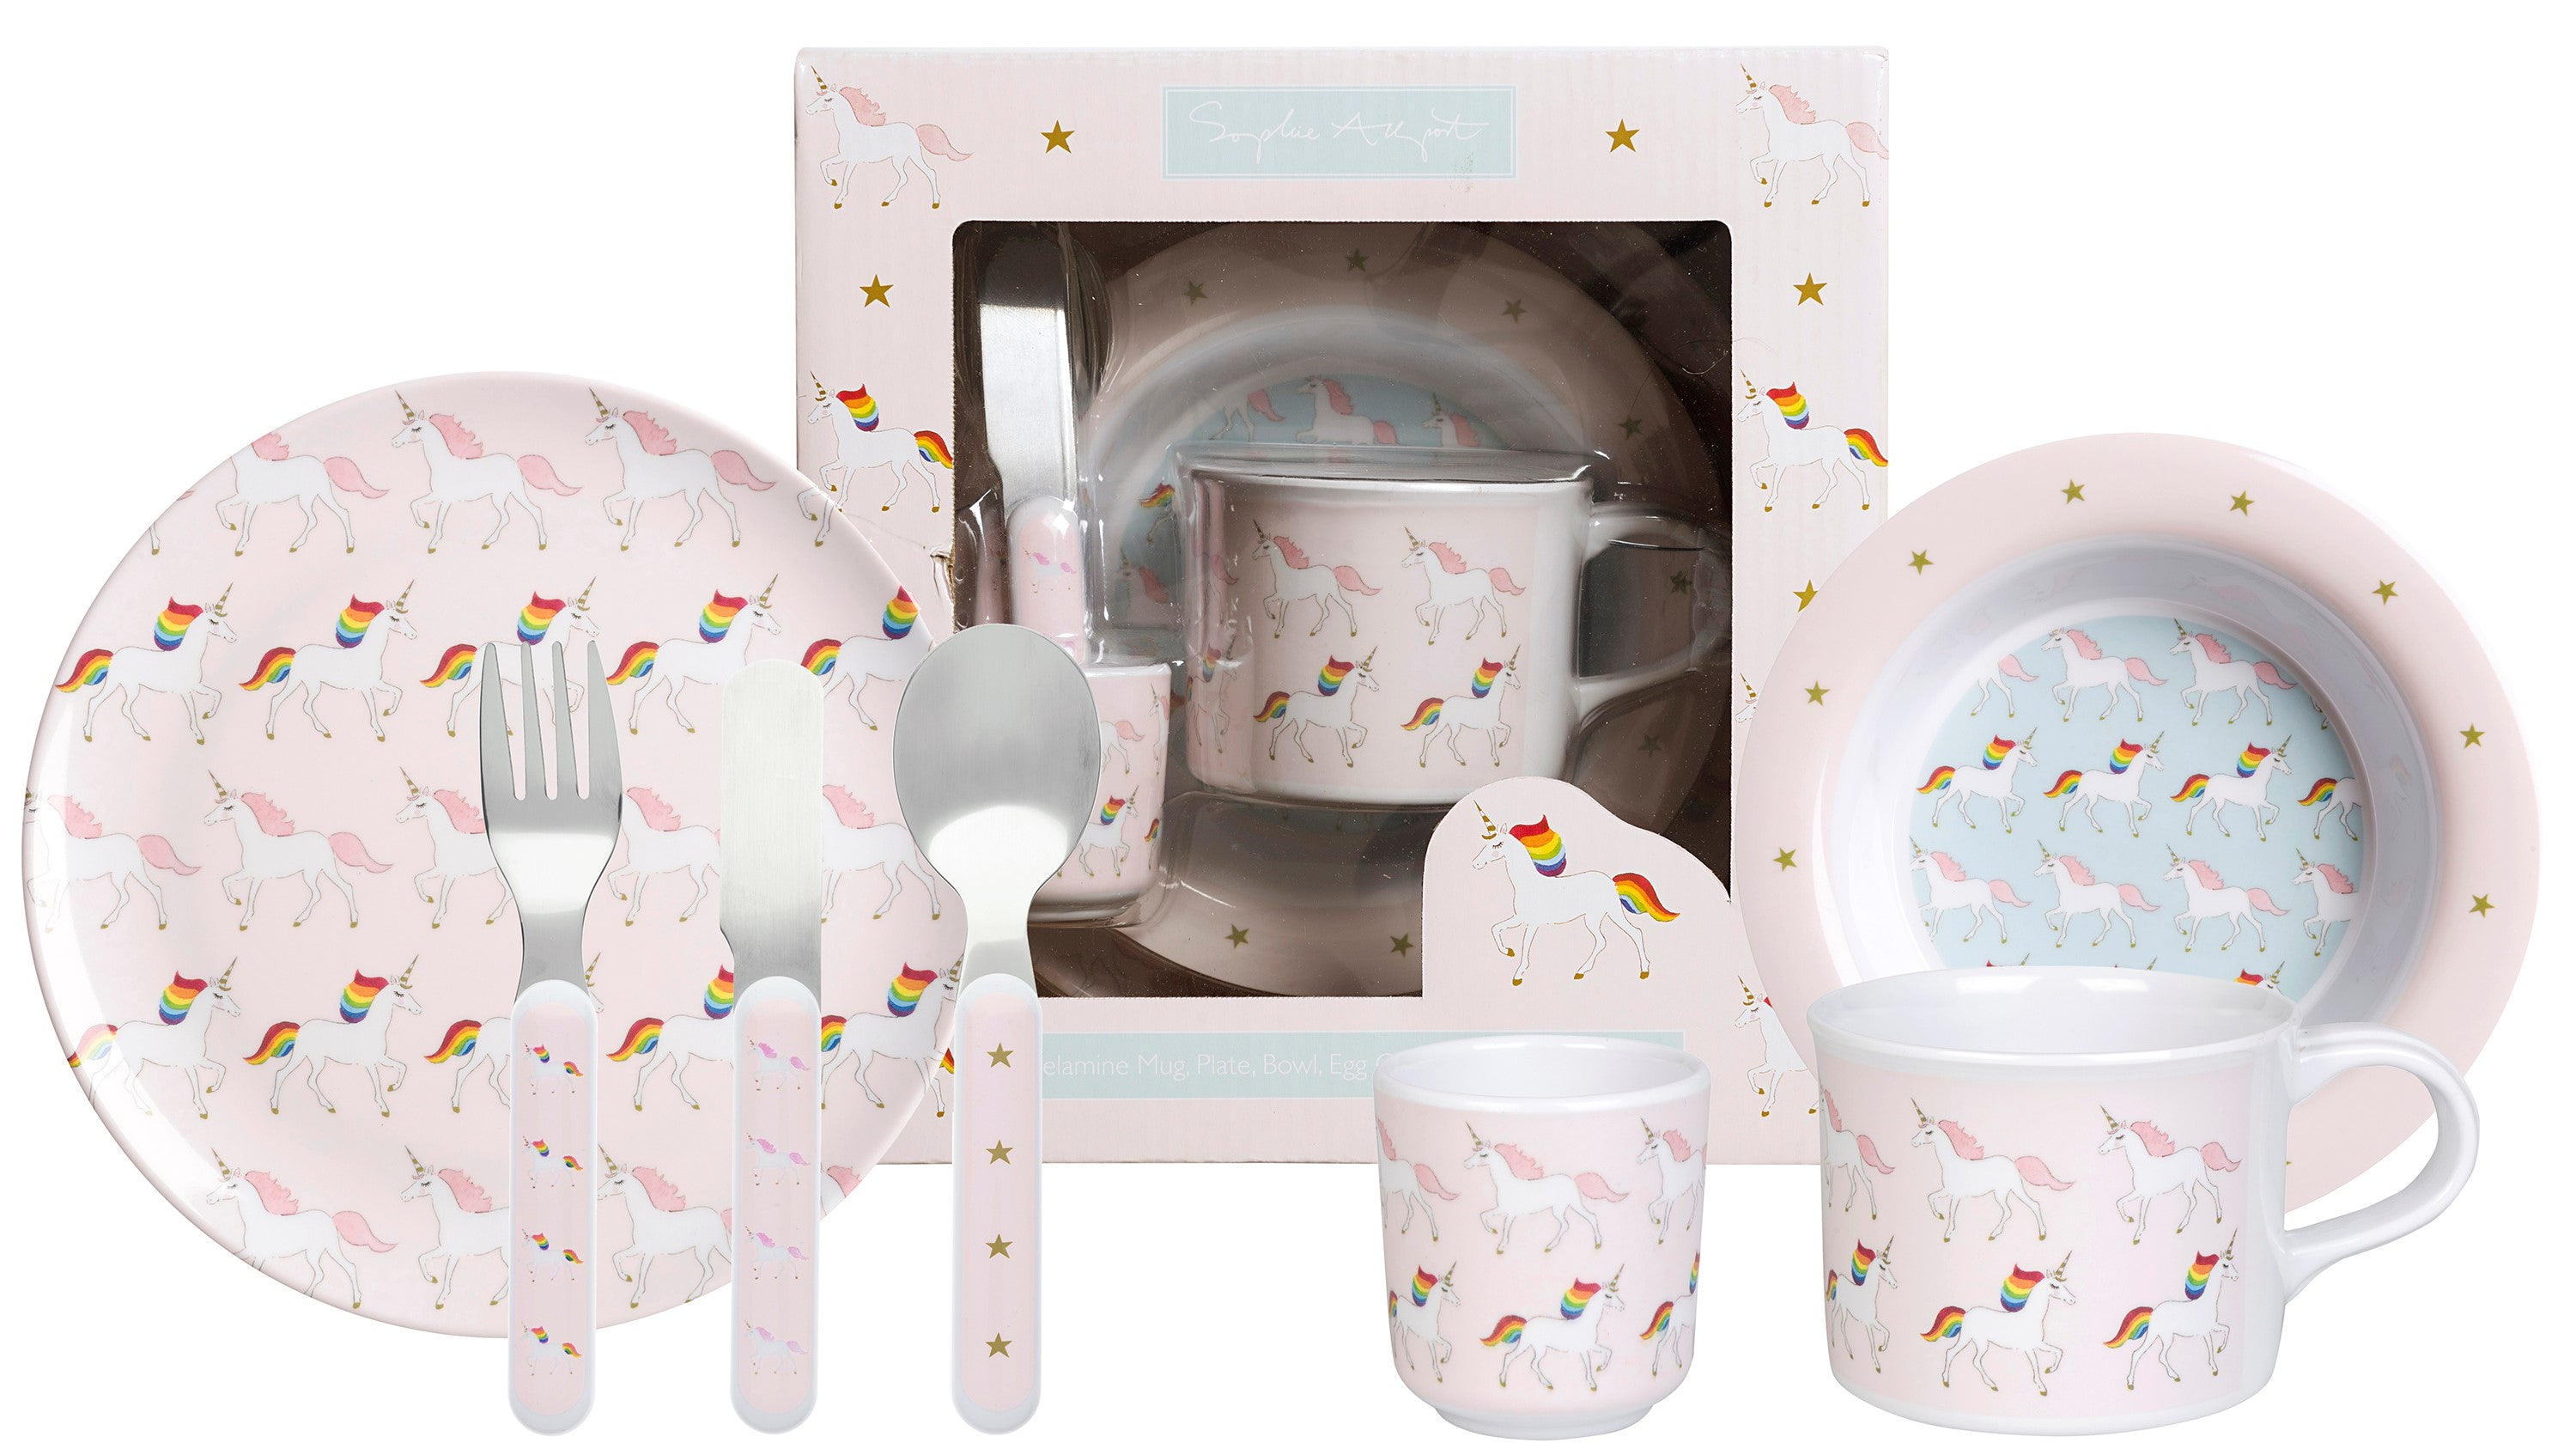 Unicorn tableware for kids